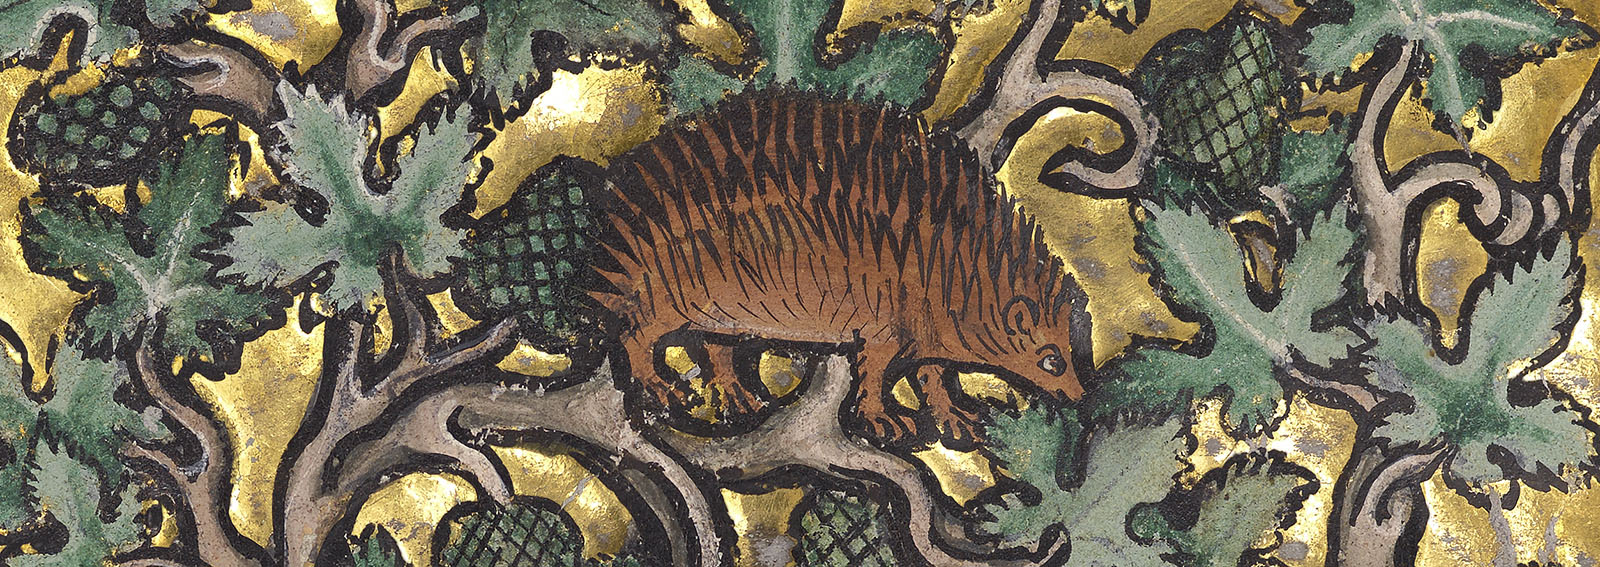 The profile of a single four-legged, brown creature facing right with several rows of spines is in the middle of a composition of brown vines, green leaves, and green pine cones.